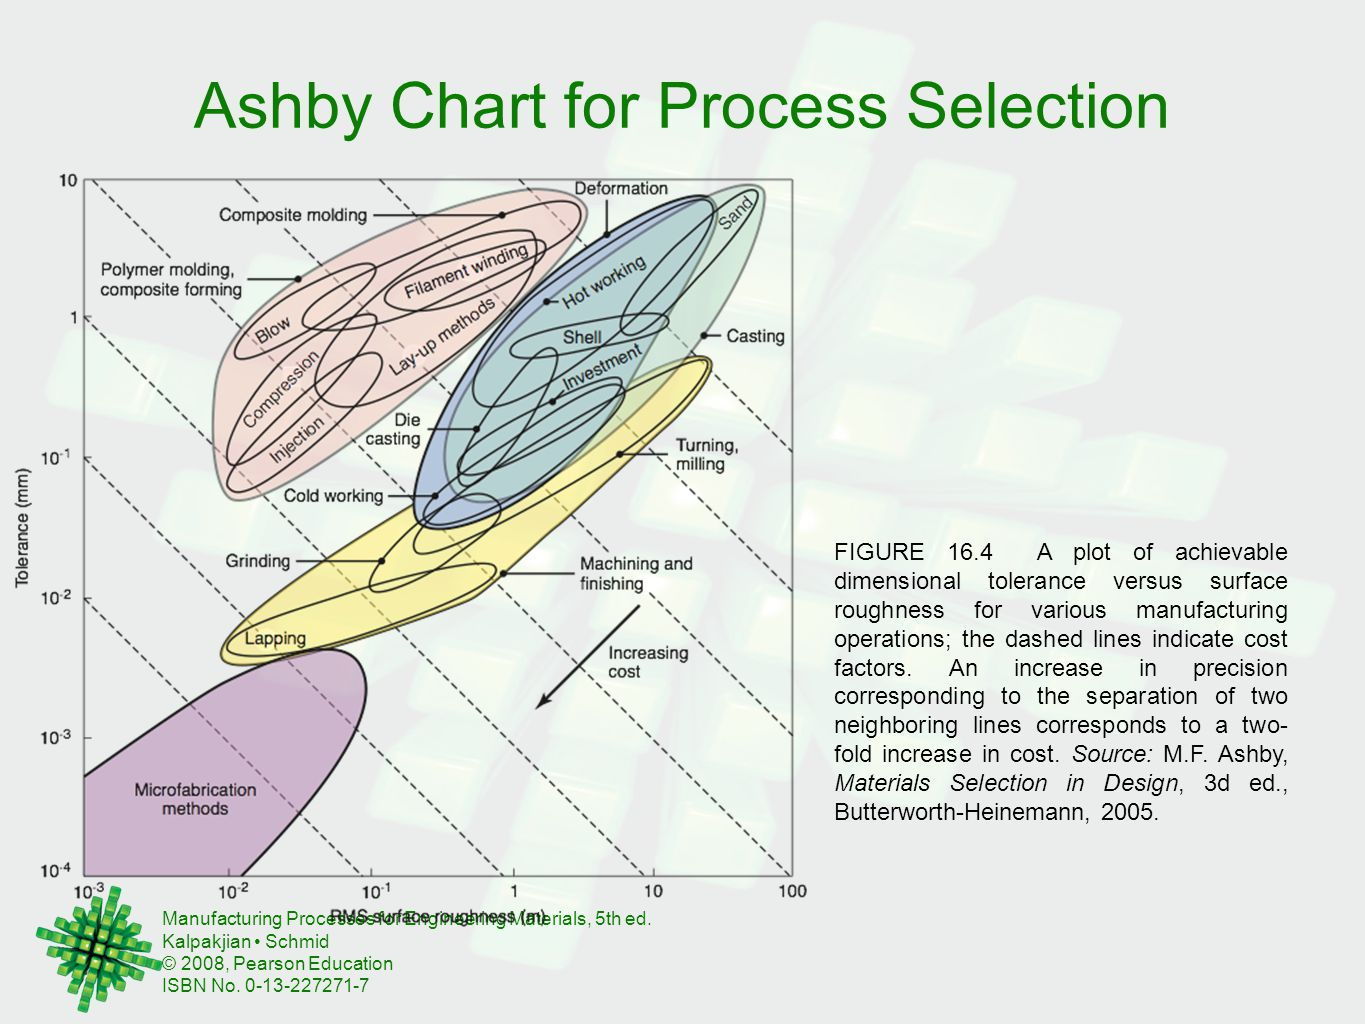 Ashby Chart for Process Selection